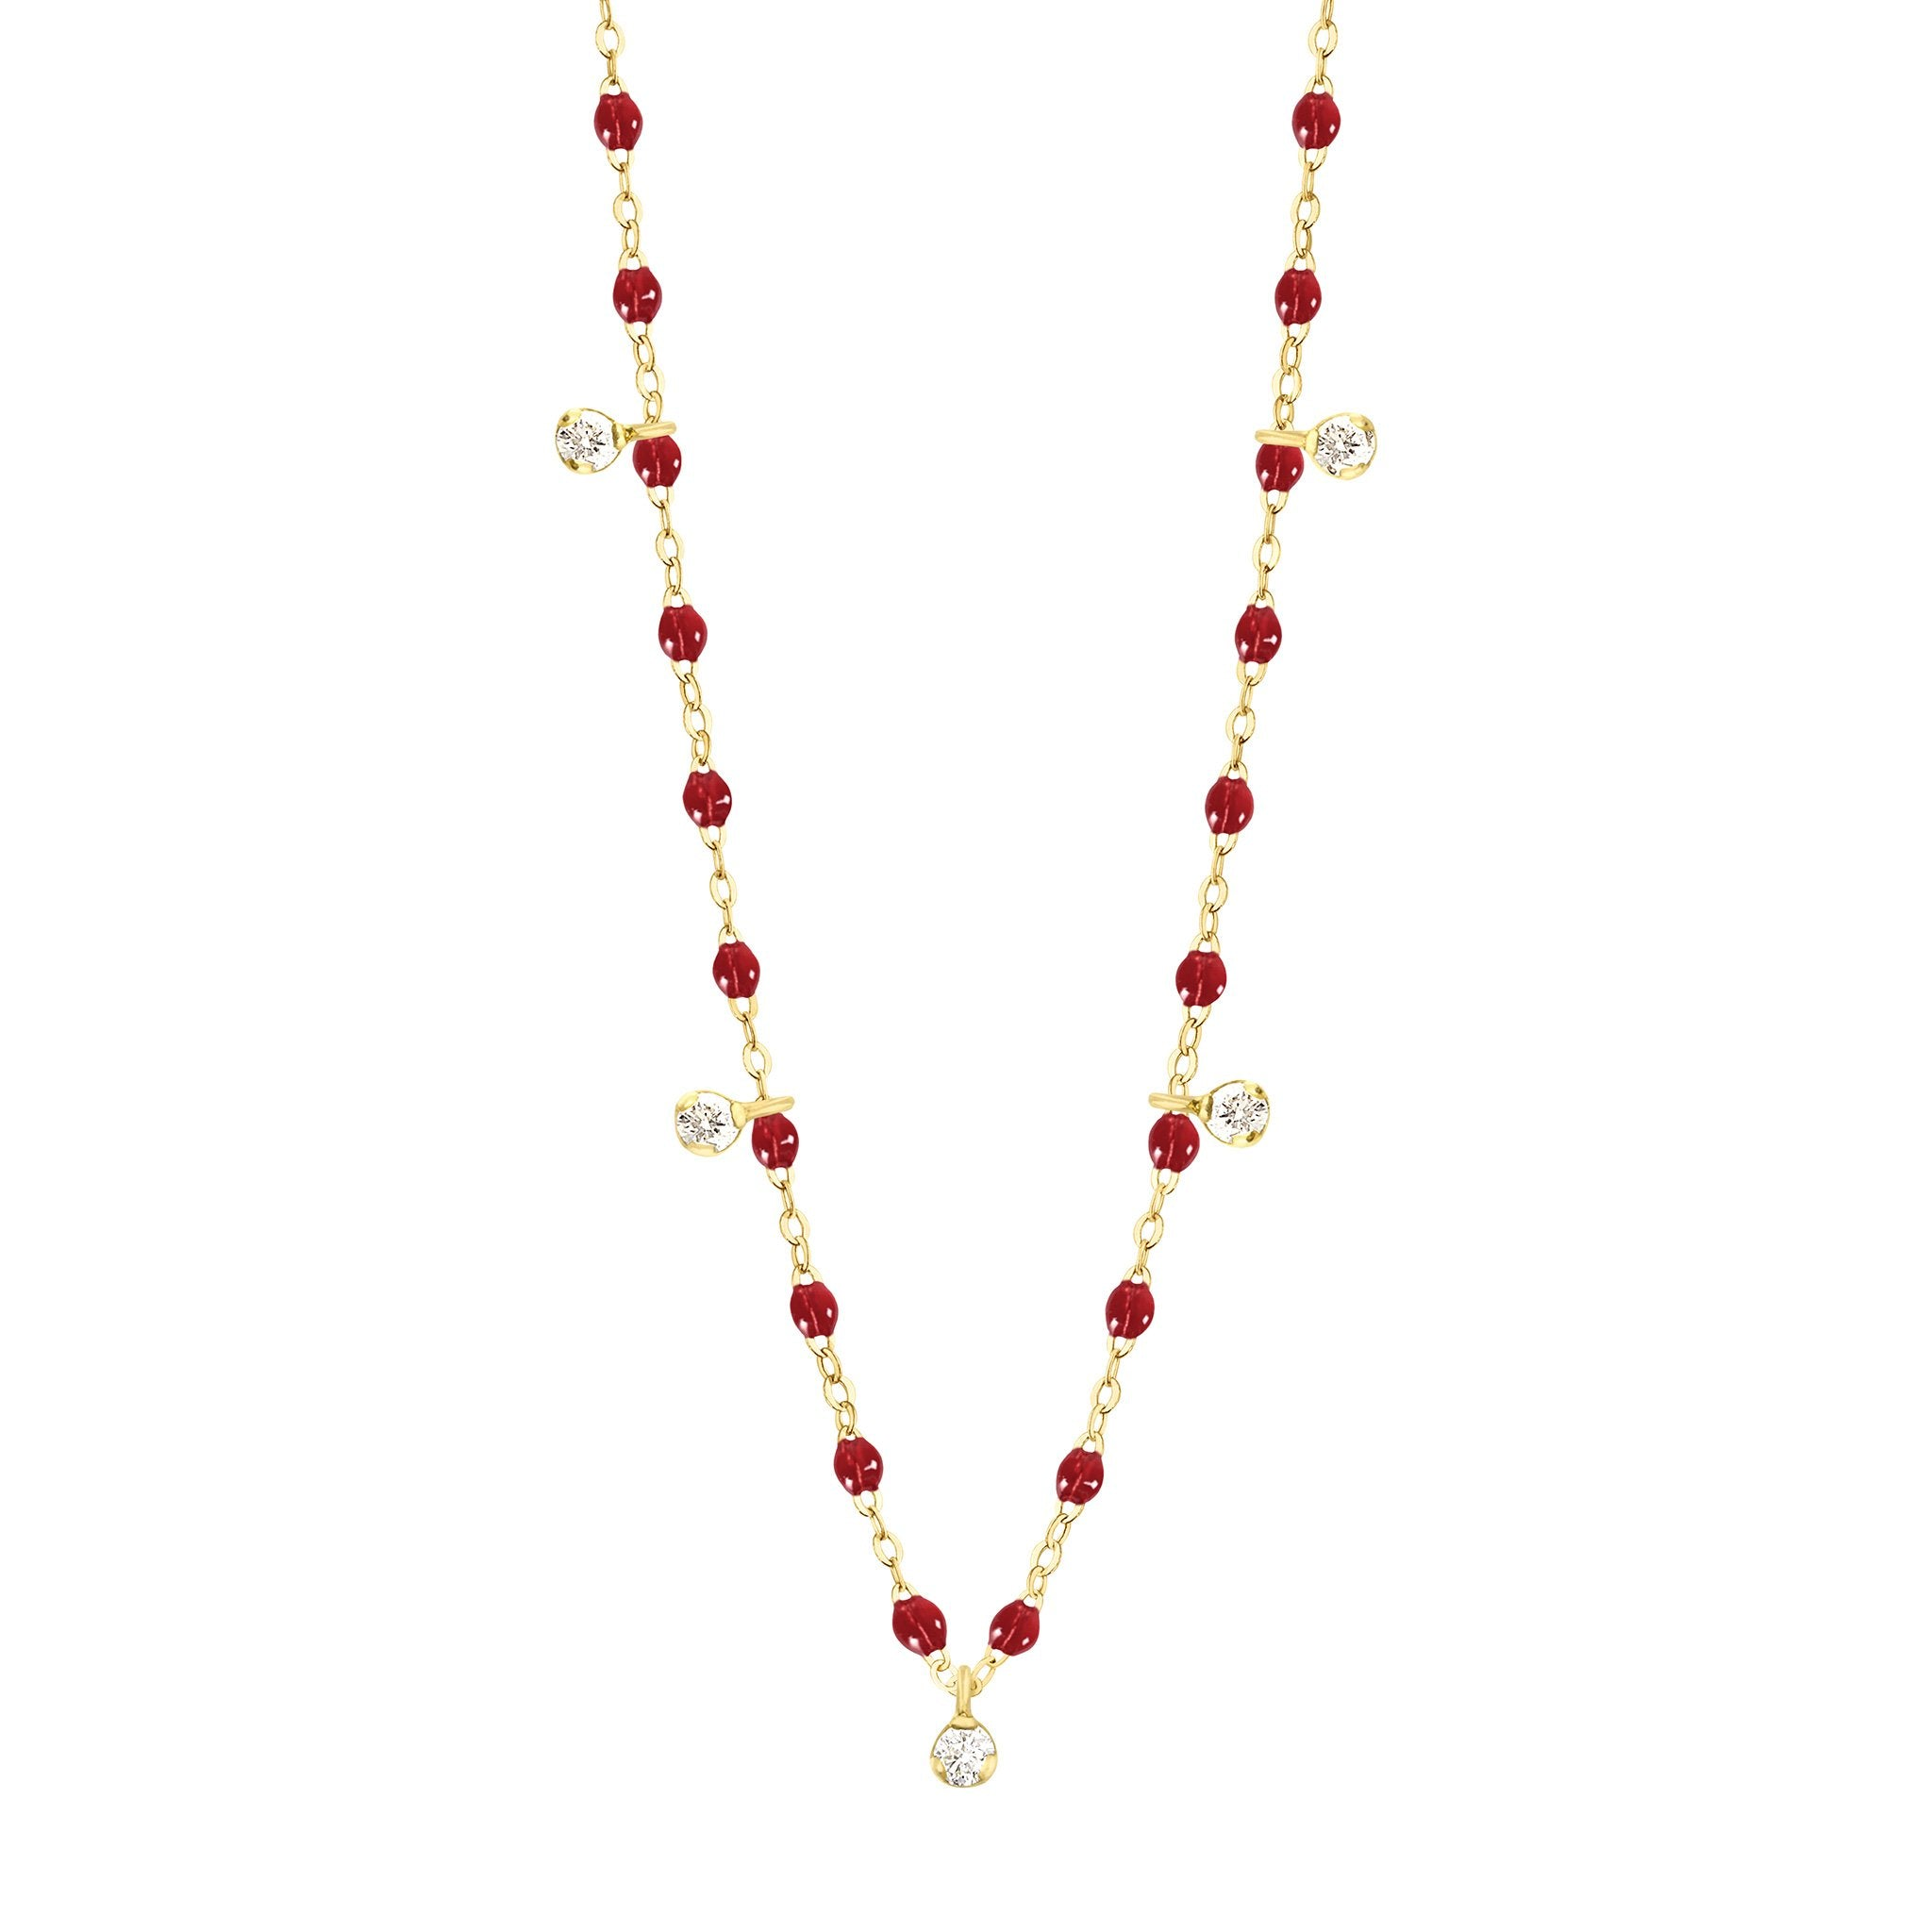 Gigi Clozeau - Collier rouge Gigi Suprême, or jaune, 5 diamants, 45 cm